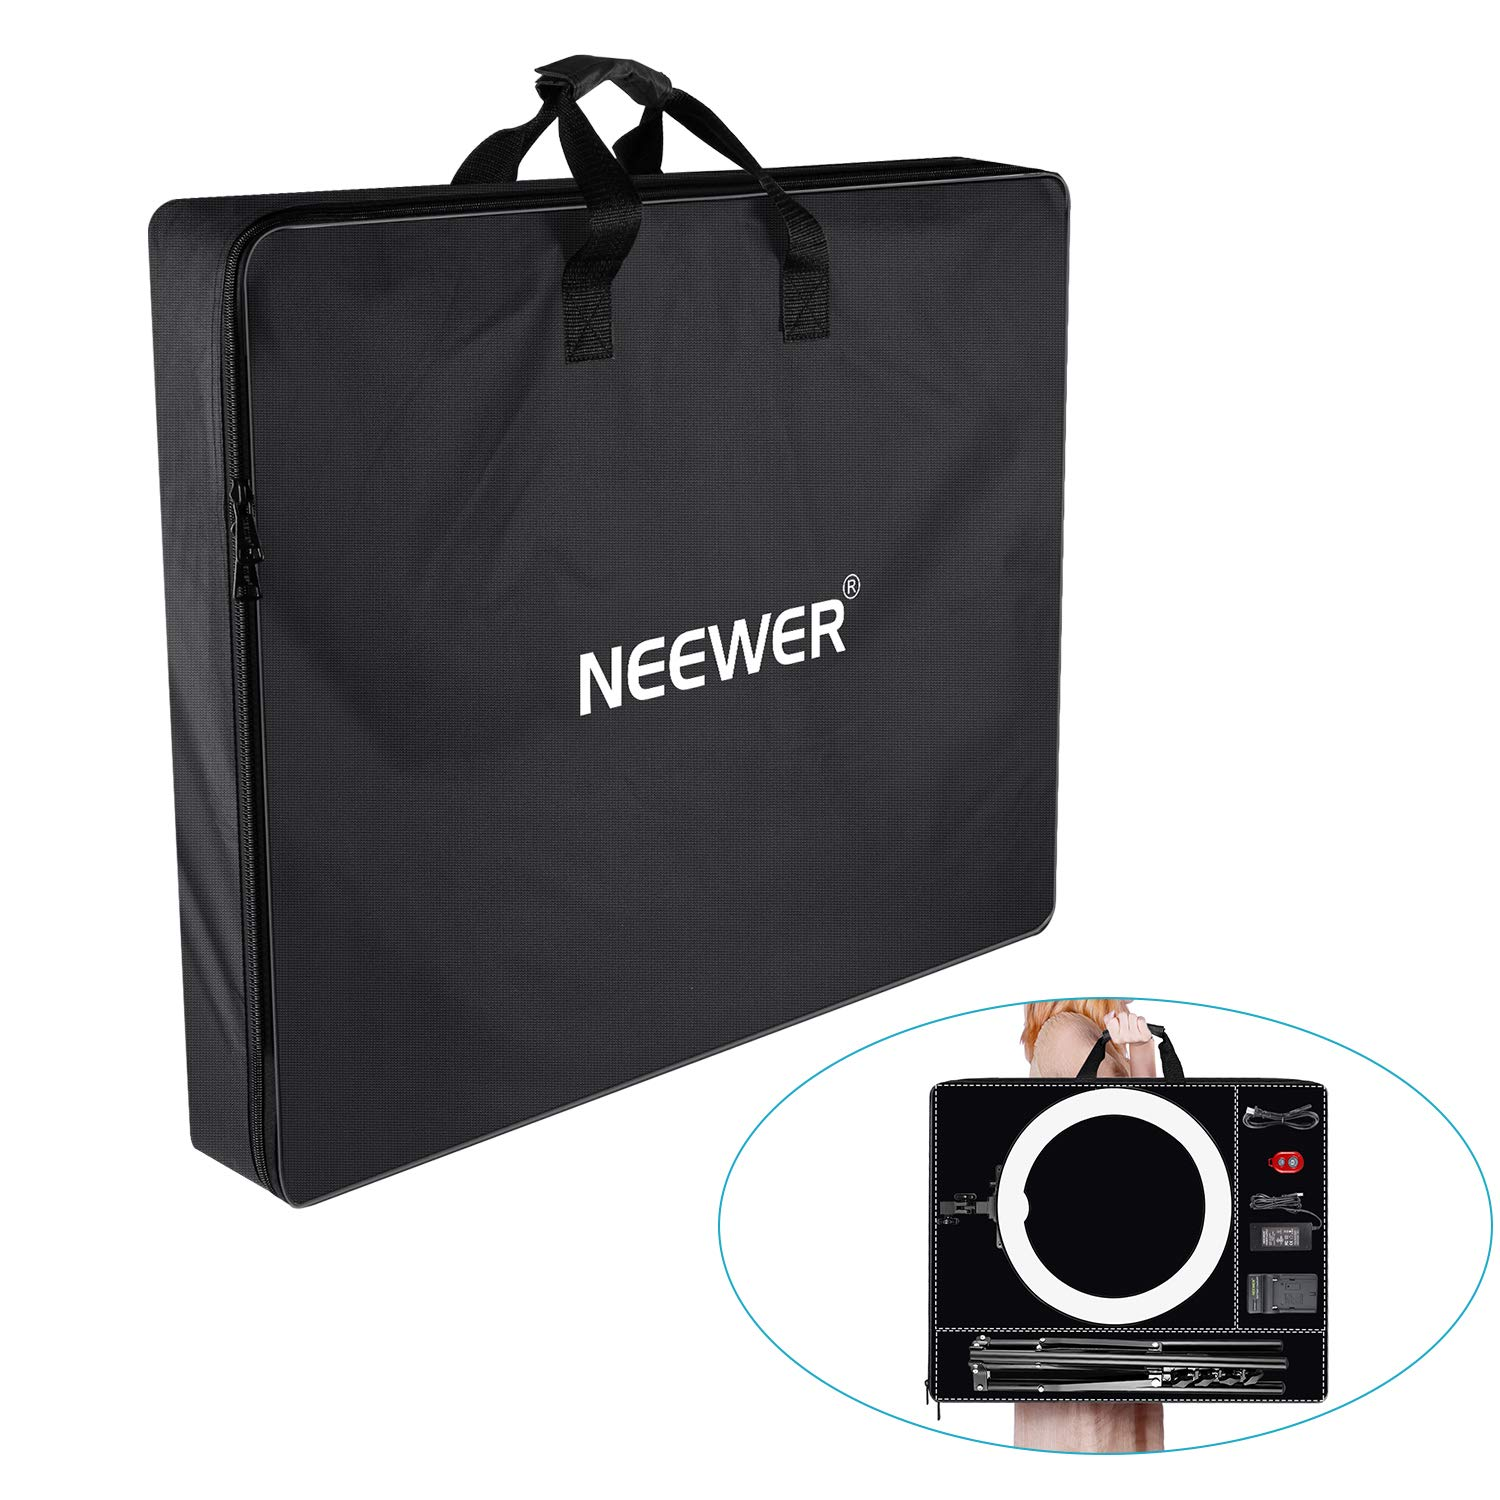 Neewer Enlarged Carrying Bag for 18 inches Ring Light, Light Stand, Accessories - 29.5x23.6 inches/75x60 Centimeters Protective Case, Durable Nylon,Light Weight (Black) by Neewer (Image #1)